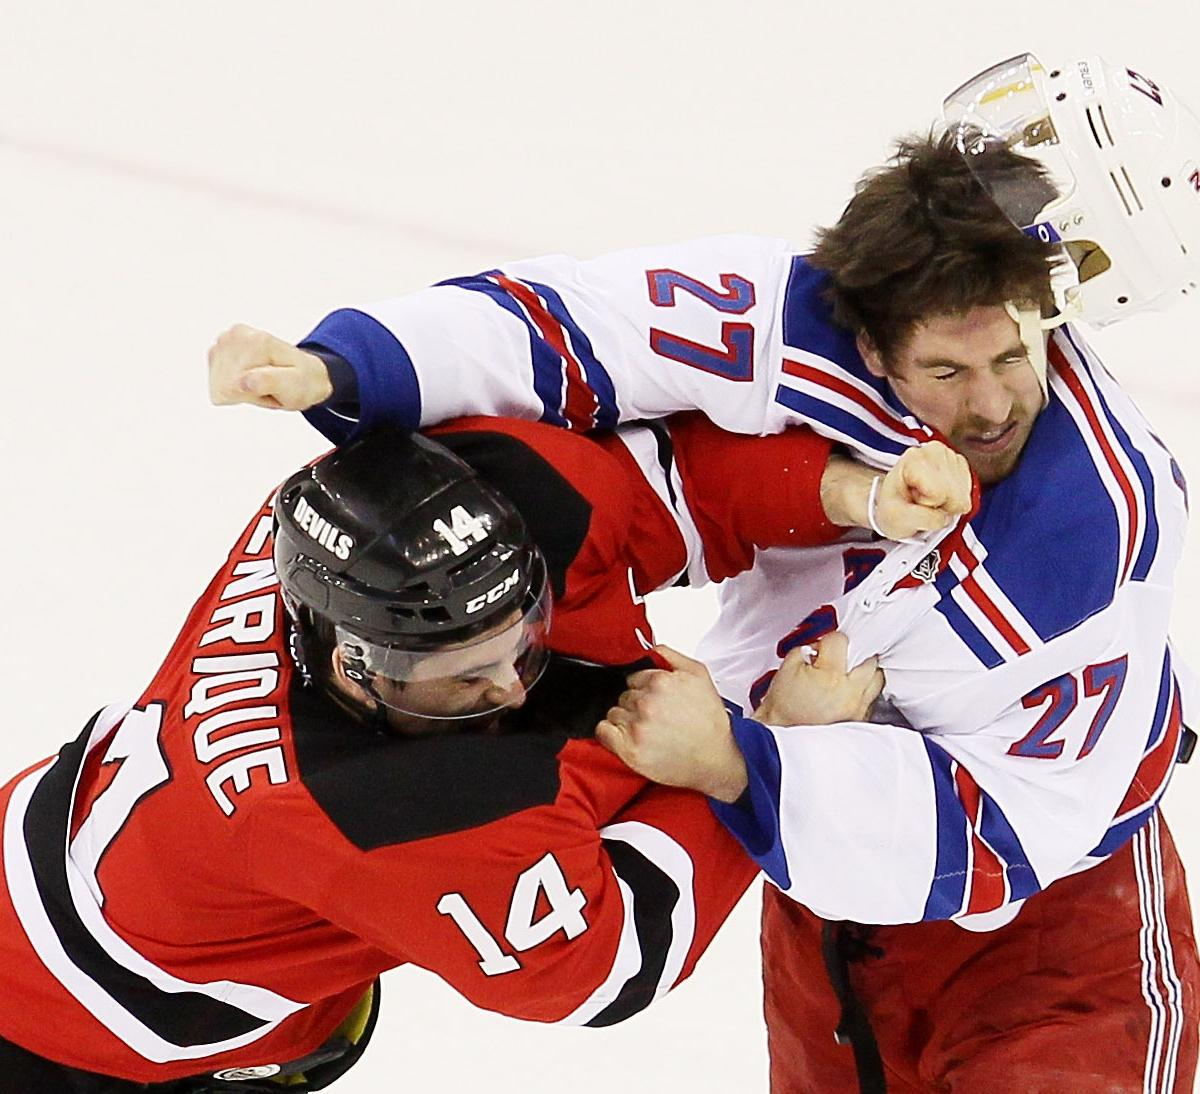 outlet store a18c6 80c5a New York Rangers vs. New Jersey Devils: Who Is the Better ...